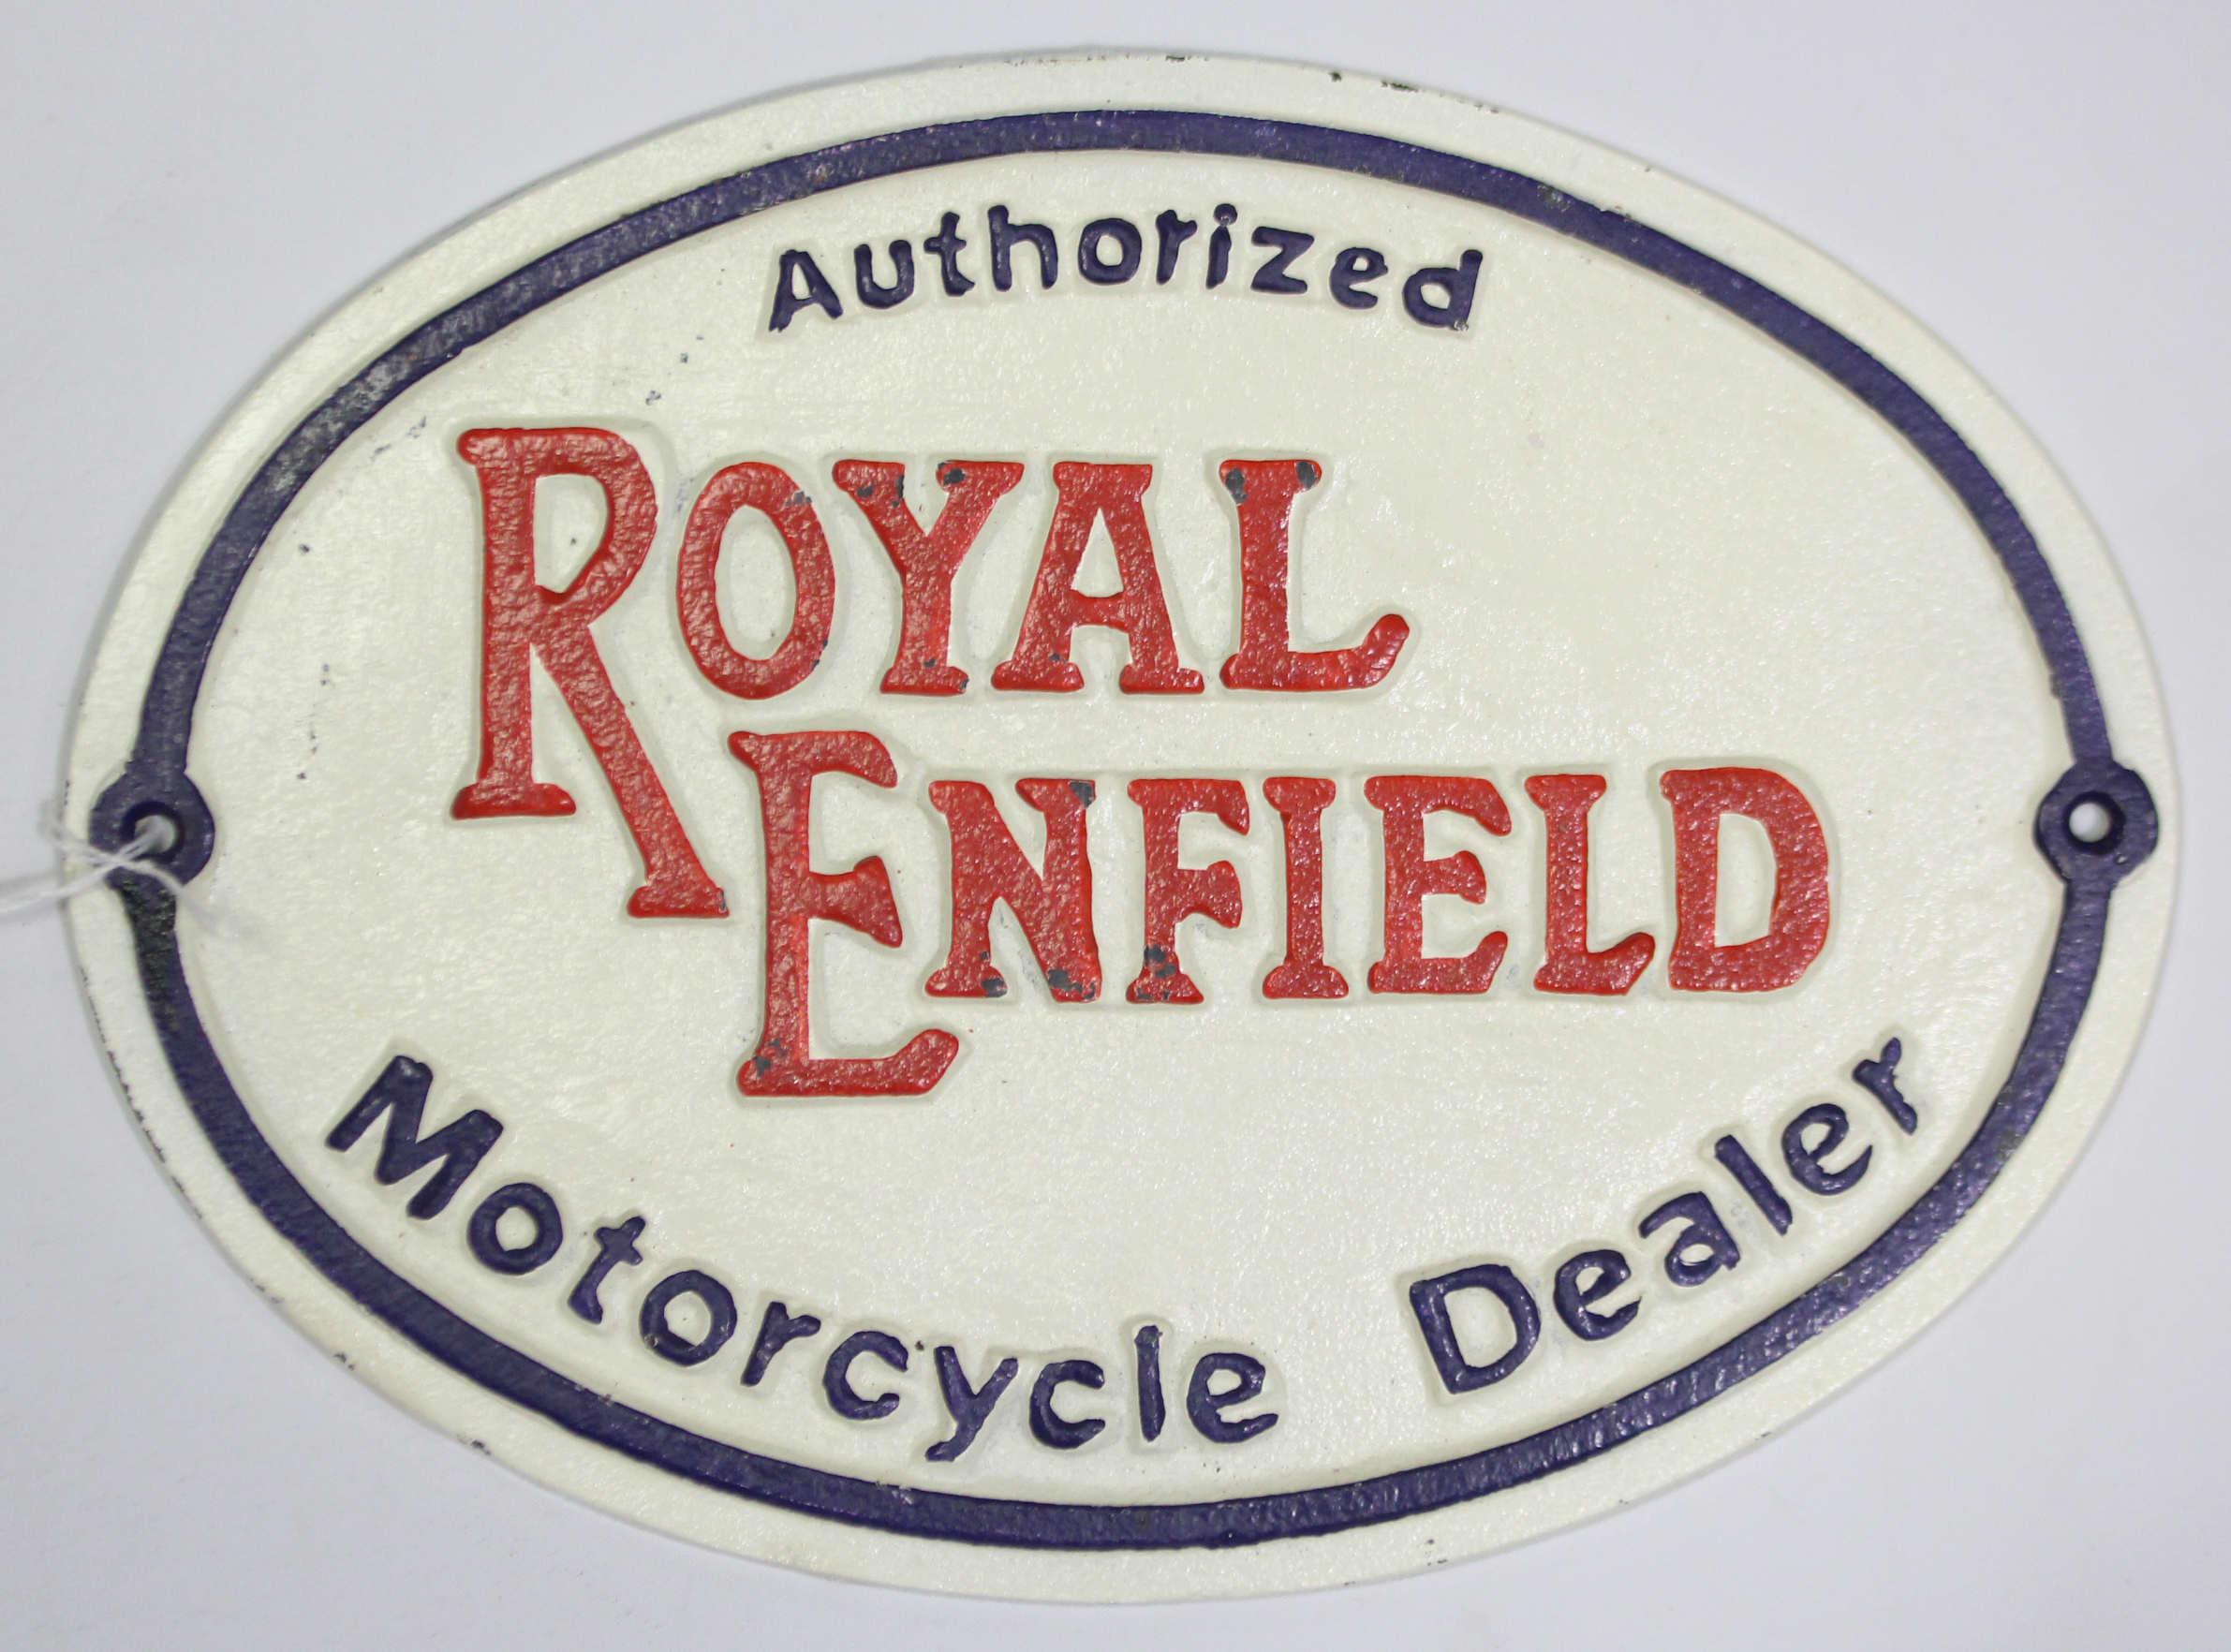 """Lot 68 - A reproduction painted cast-iron oval sign """"Authorised ROYAL ENFIELD Motorcycle Dealer"""", 8"""" x 11""""."""